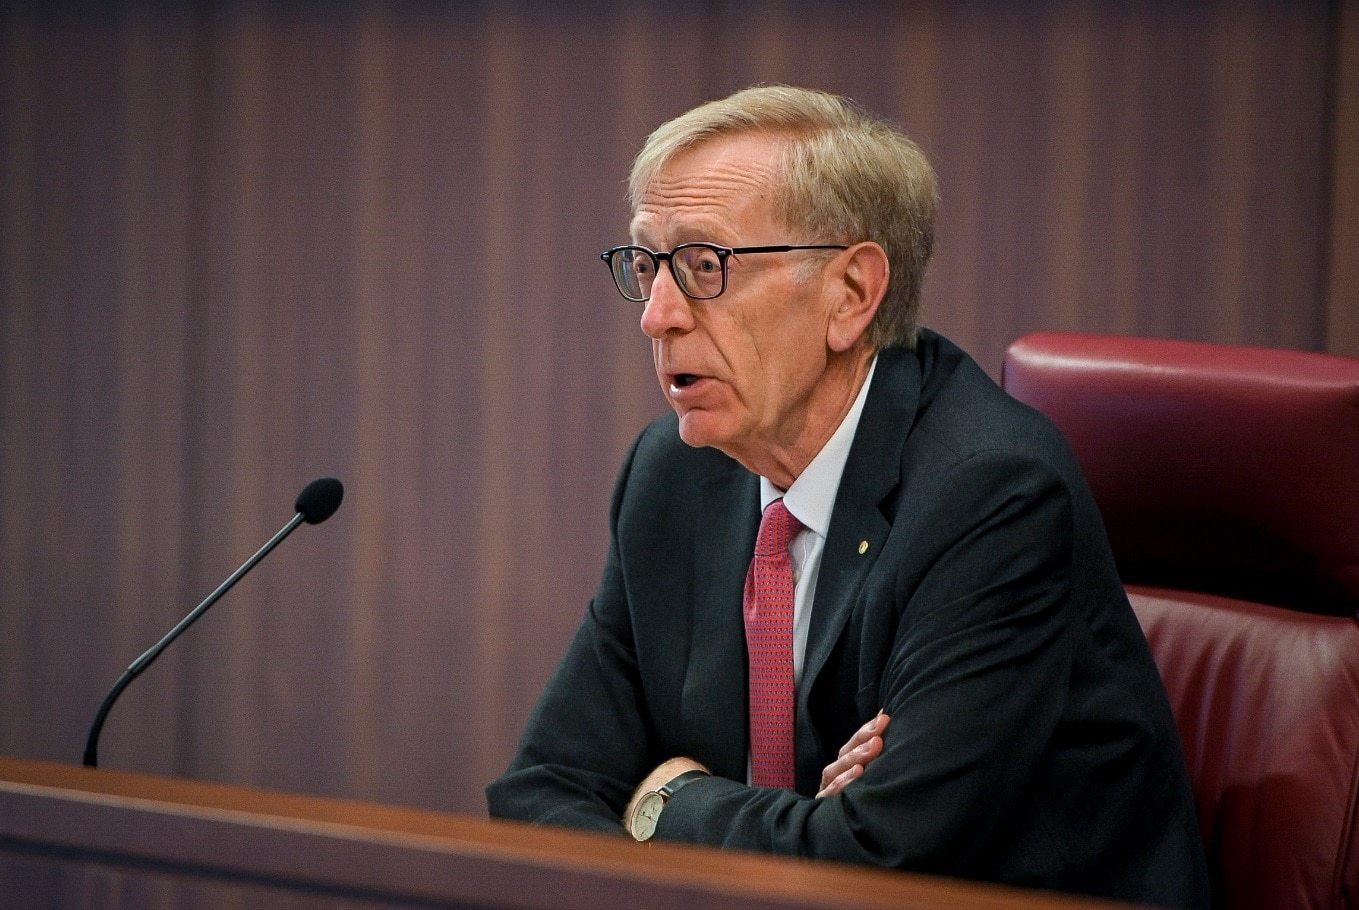 The Commissioner Kenneth Hayne during The Royal Commission's initial public hearing into Misconduct in the Banking, Superannuation